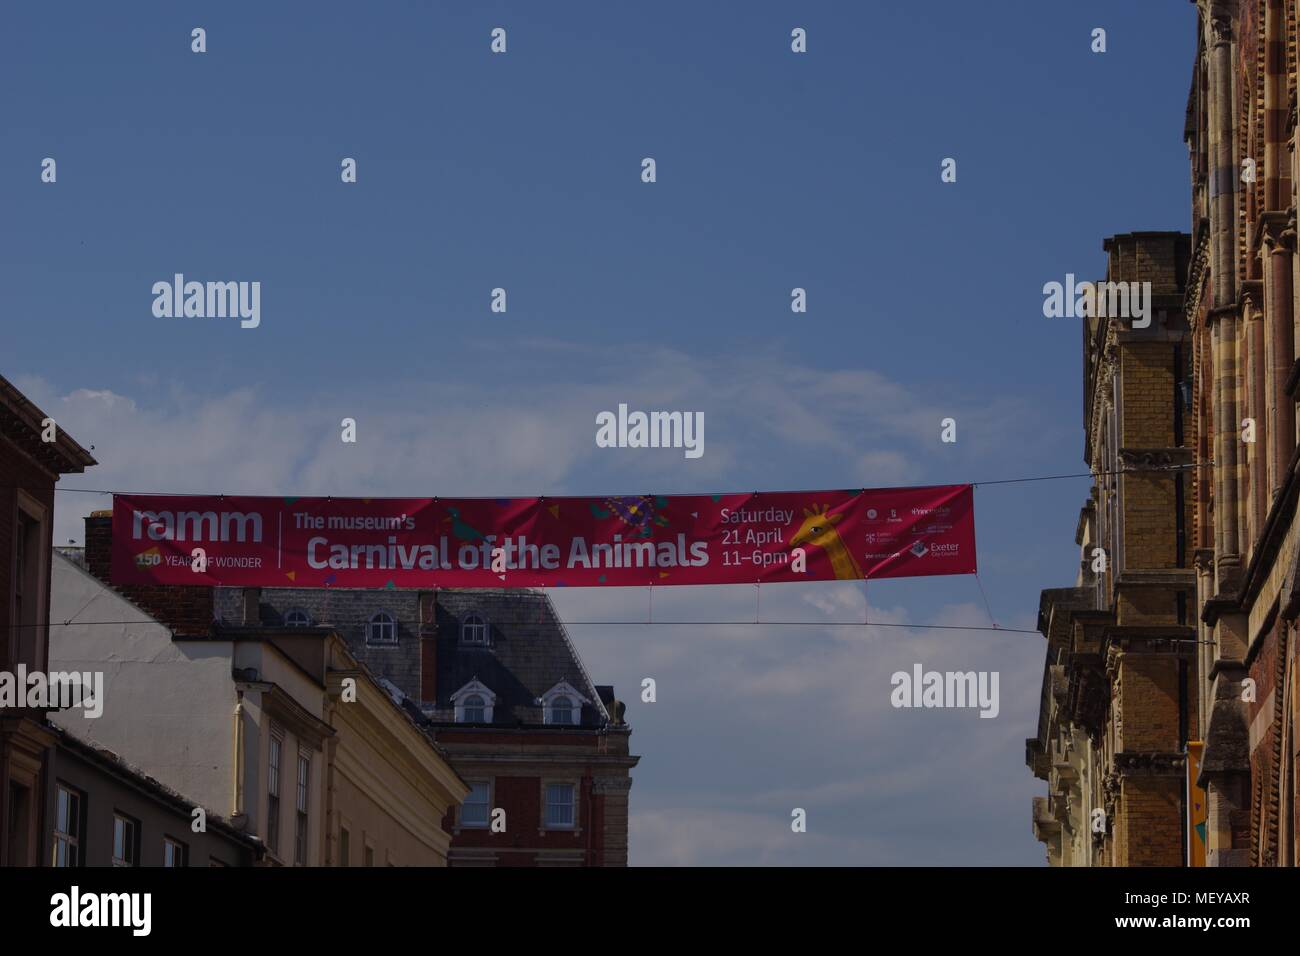 Event Banner Advert for ramm's Carnival of the Animals over Exeter Queen's Street. Devon, UK. April, 2018. - Stock Image